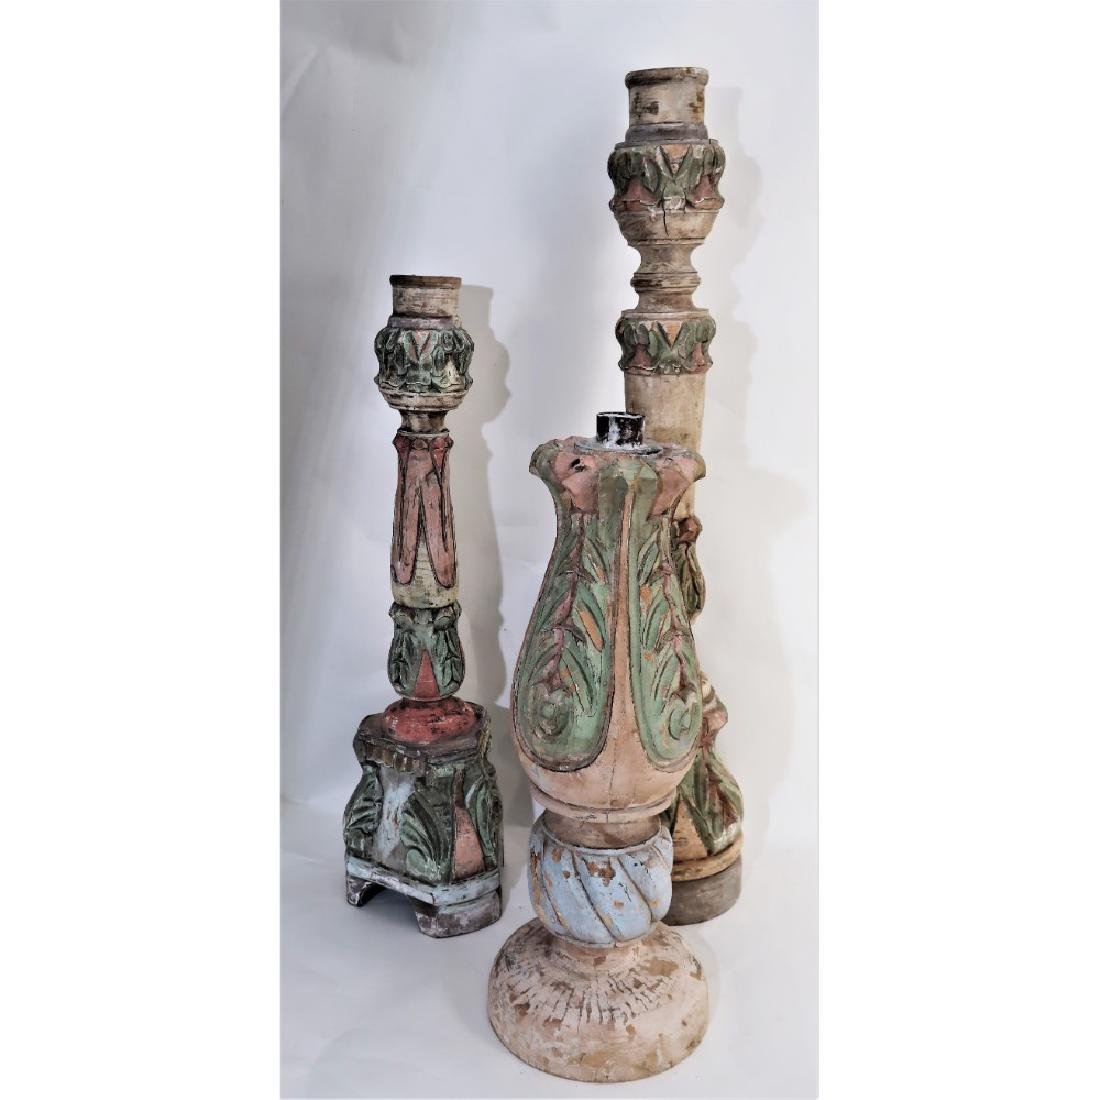 3 giant candlesticks decorative - 2